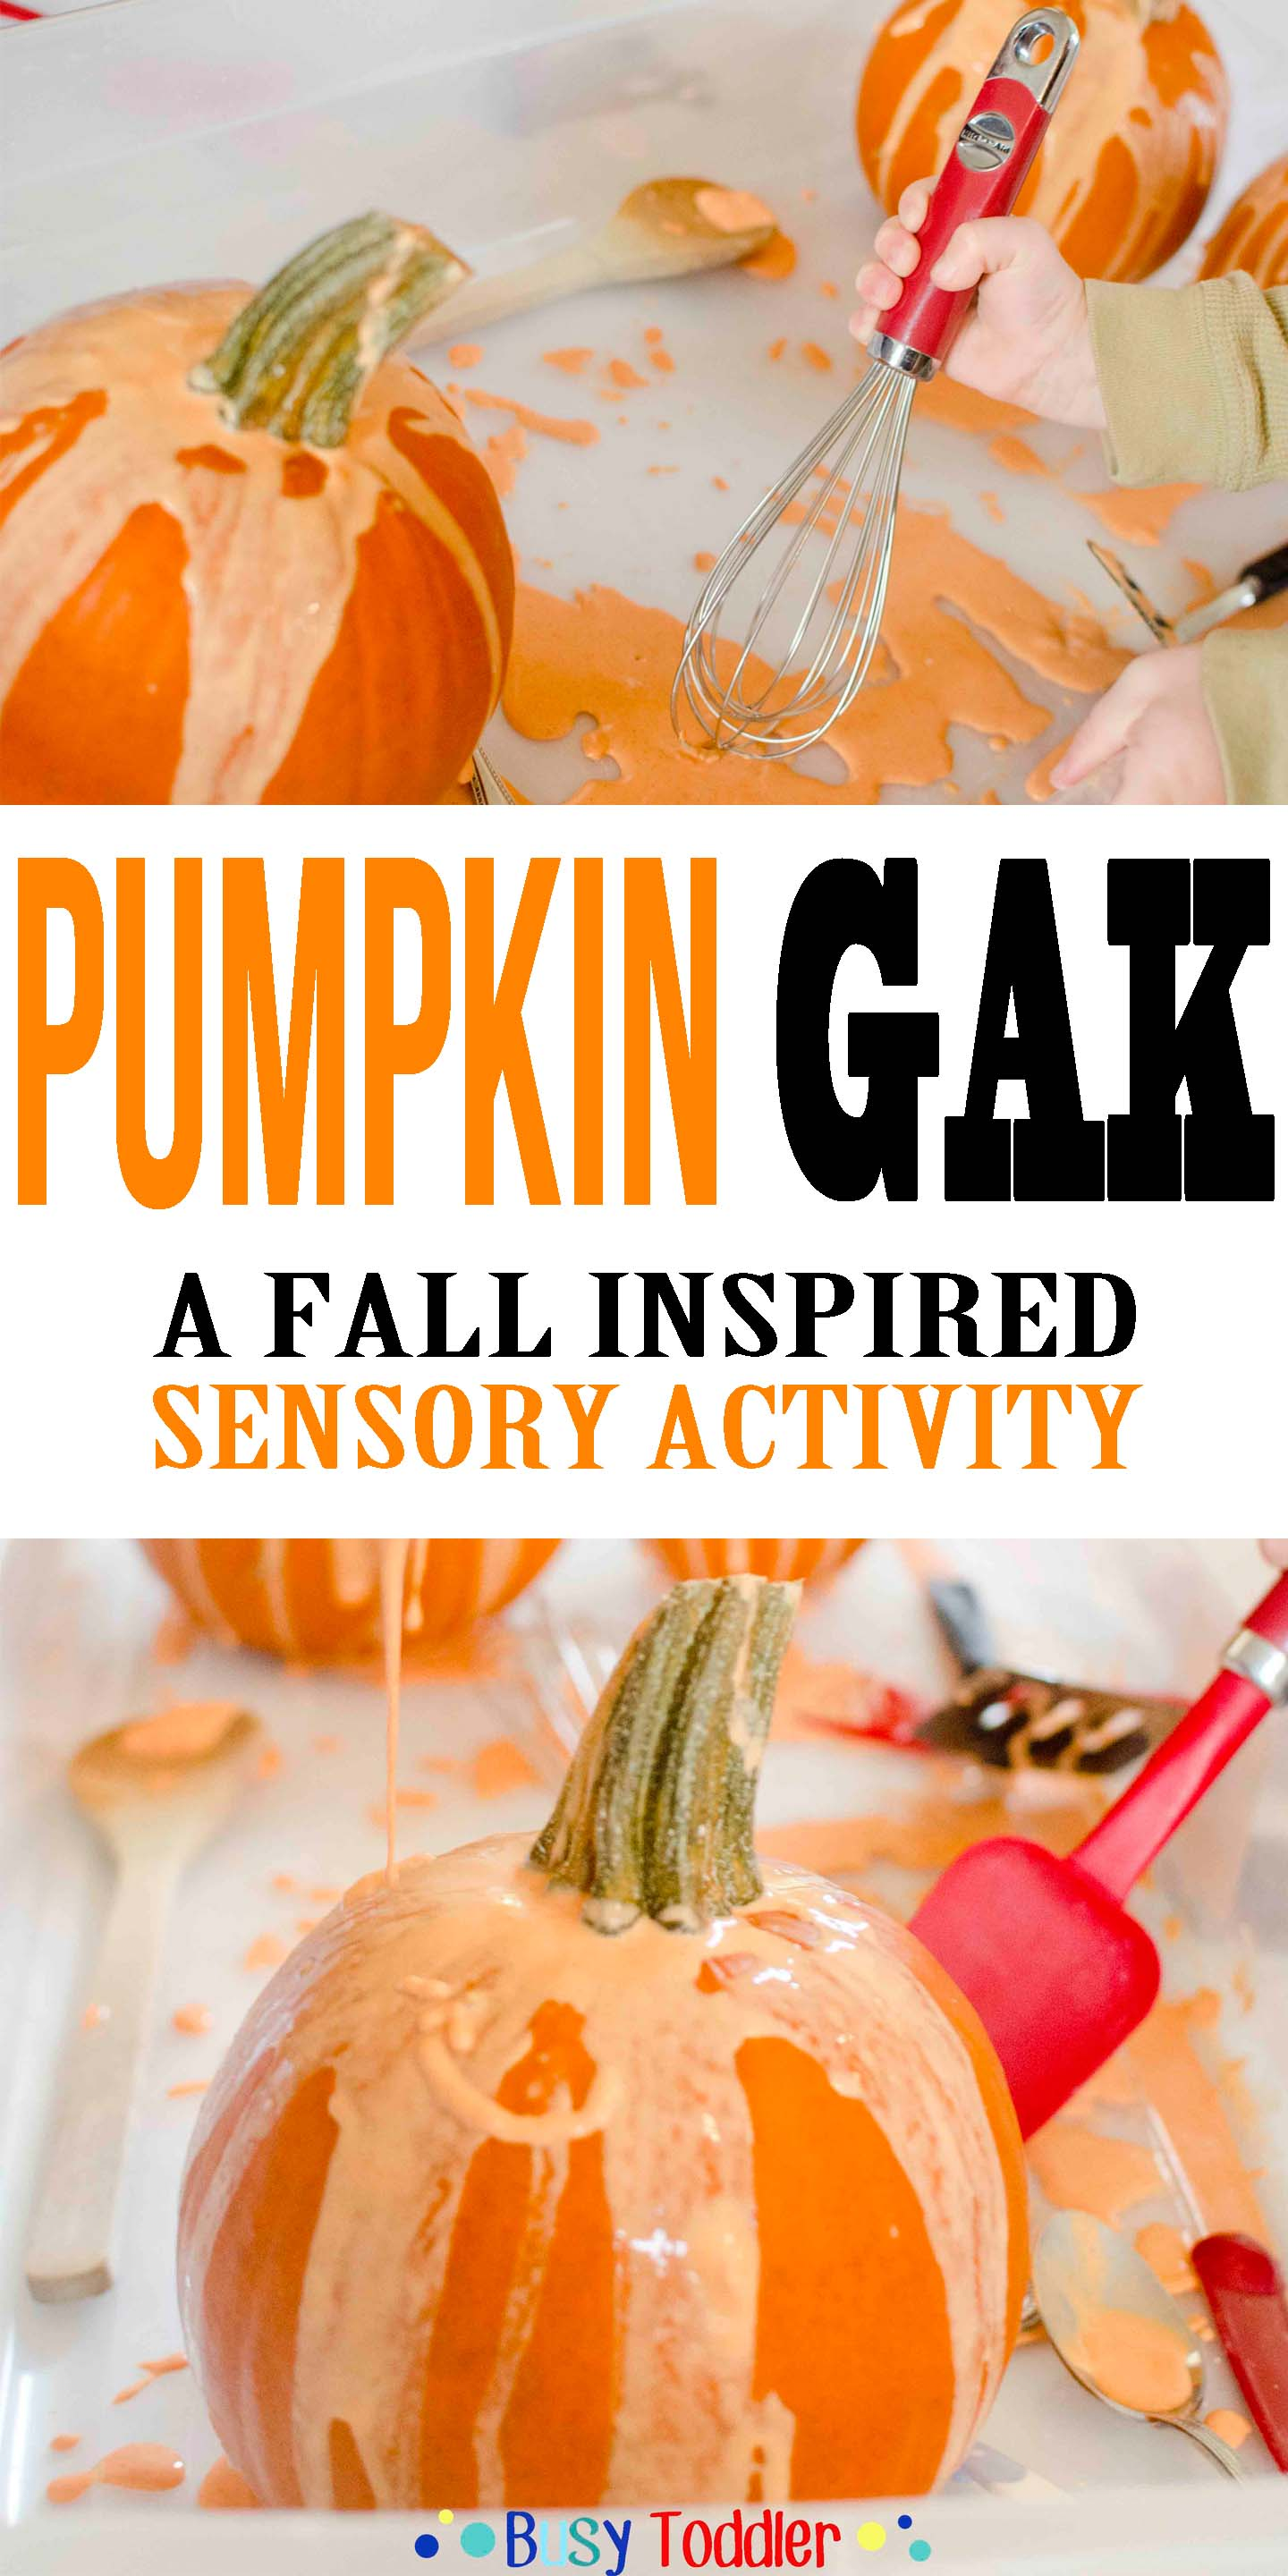 Pumpkin Gak: A fall inspired sensory activity